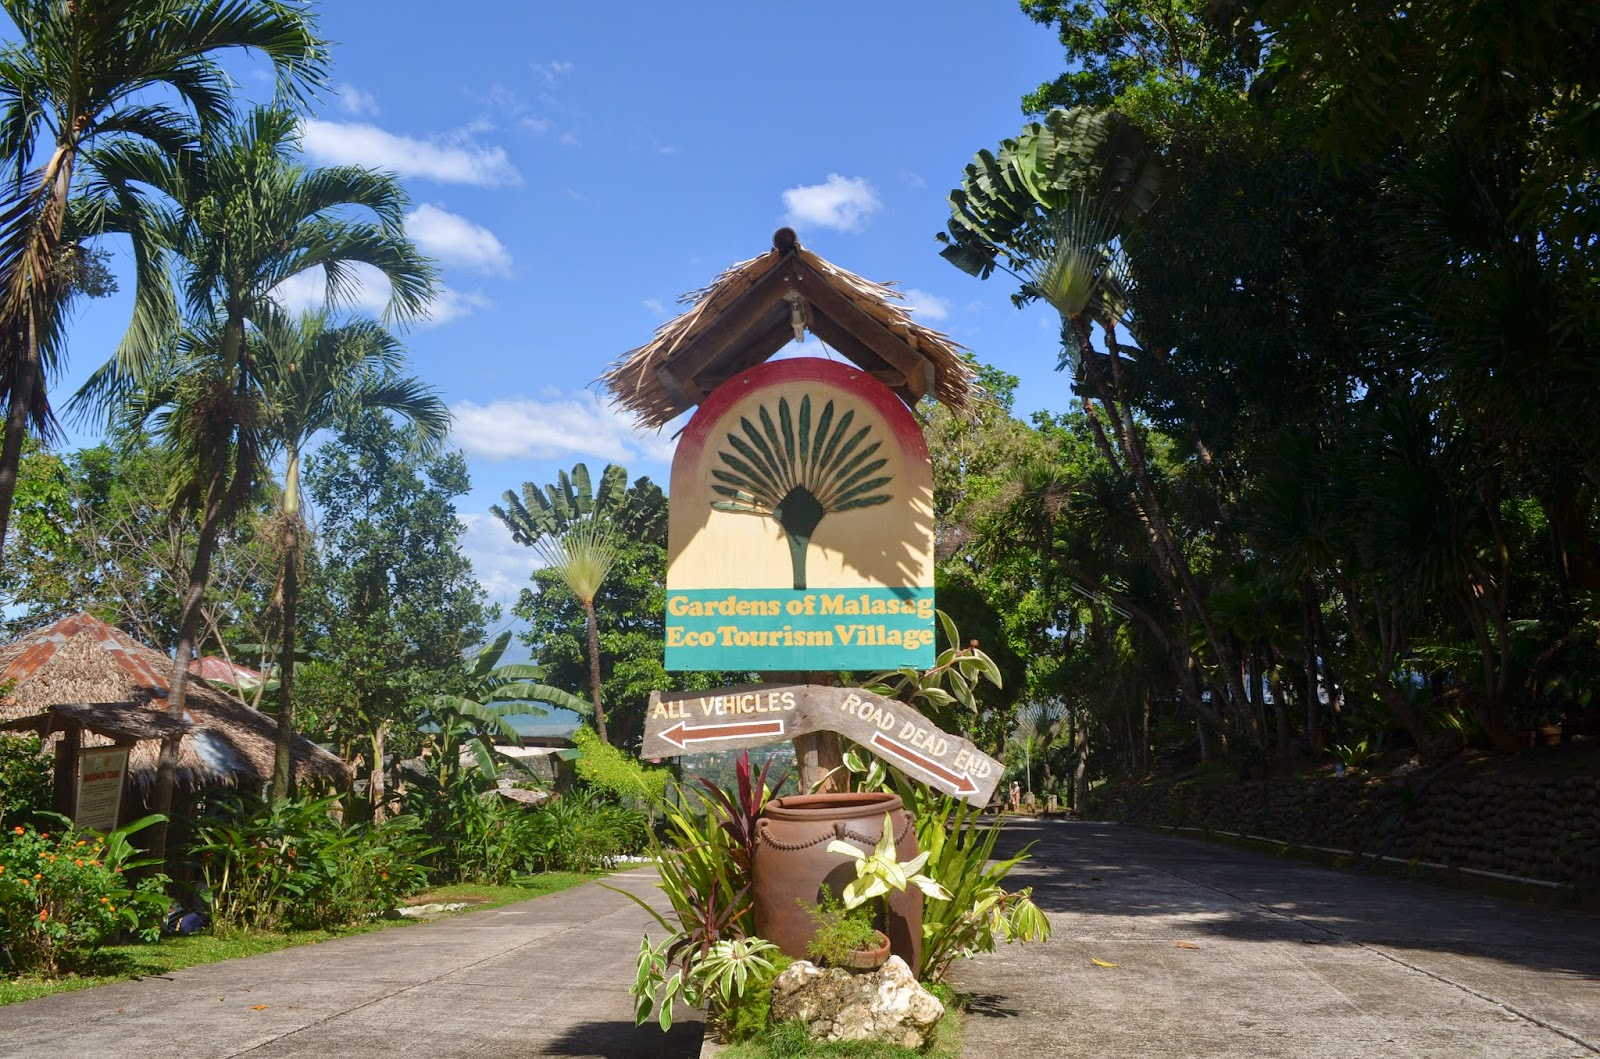 malasag ecosystem Cagayan de oro abbreviated cdeo, cdo, cdoc and or cag de oro, is a highly-urbanized first class and capital city of the province of misamis oriental in mindanao, southern part of the philippines.